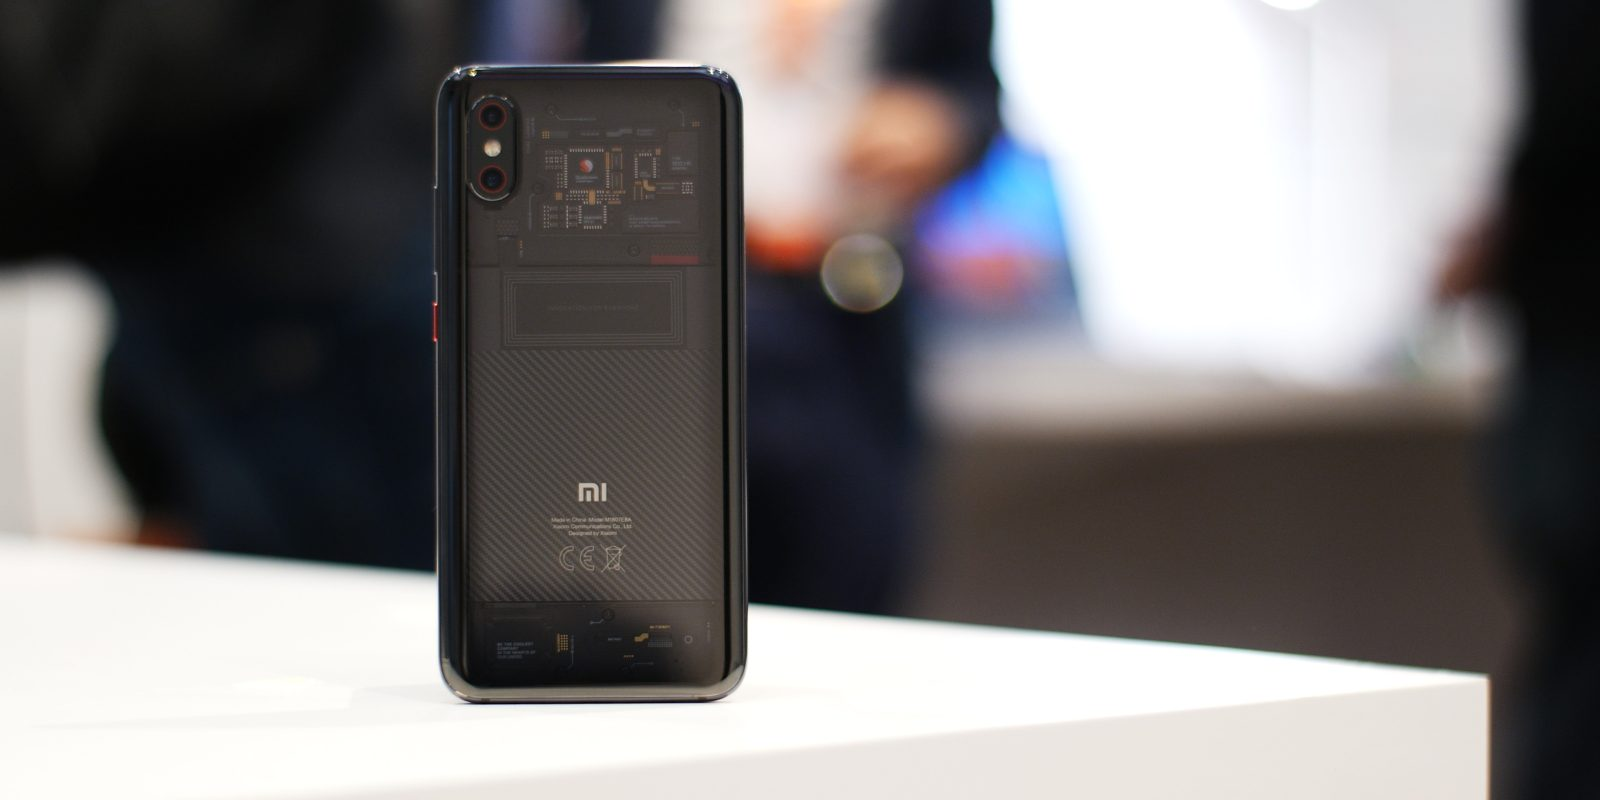 Hands-on: The Xiaomi Mi 8 Pro is a high quality iPhone XS